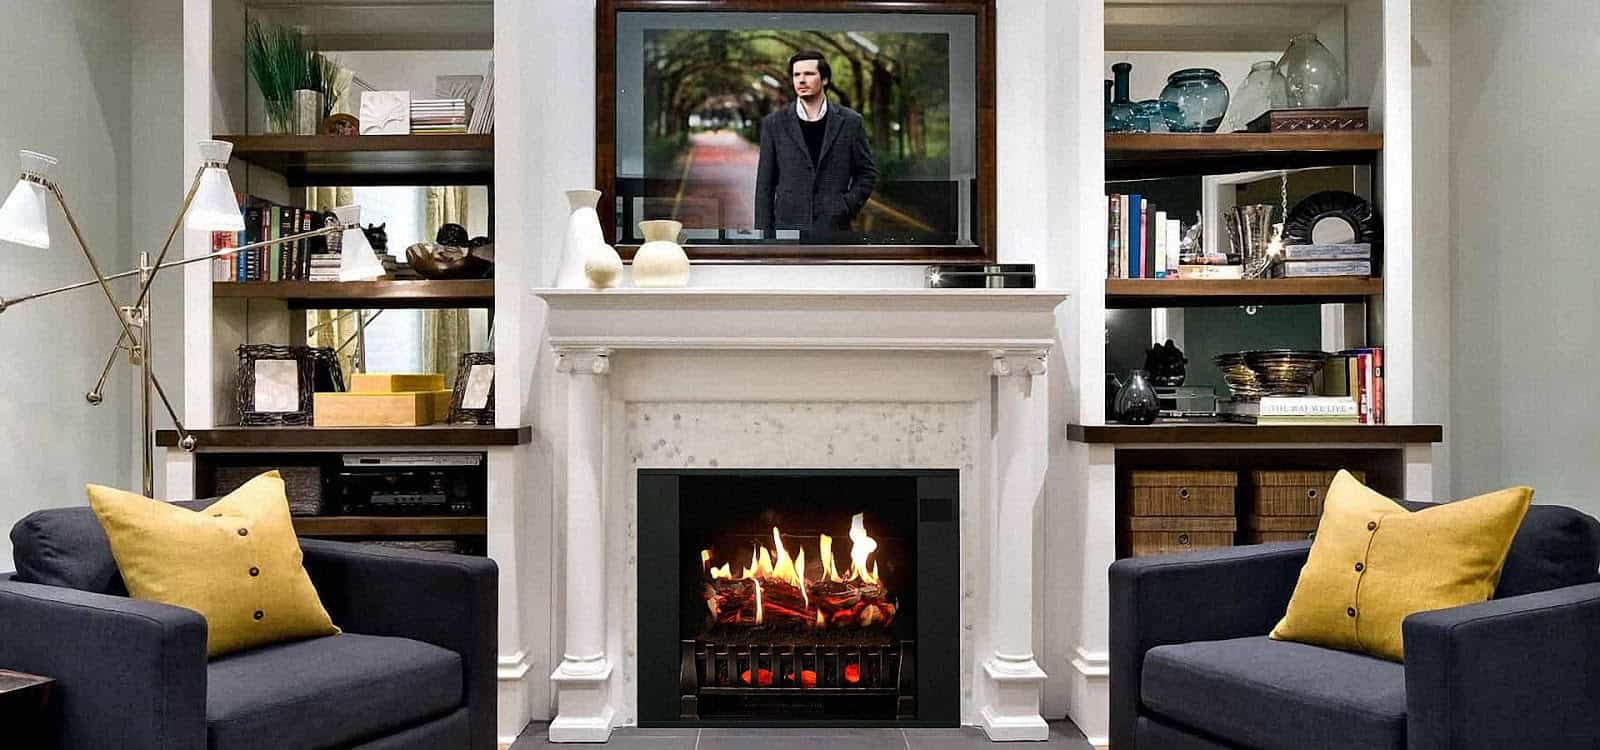 How to Clean the Dust of Fireplace